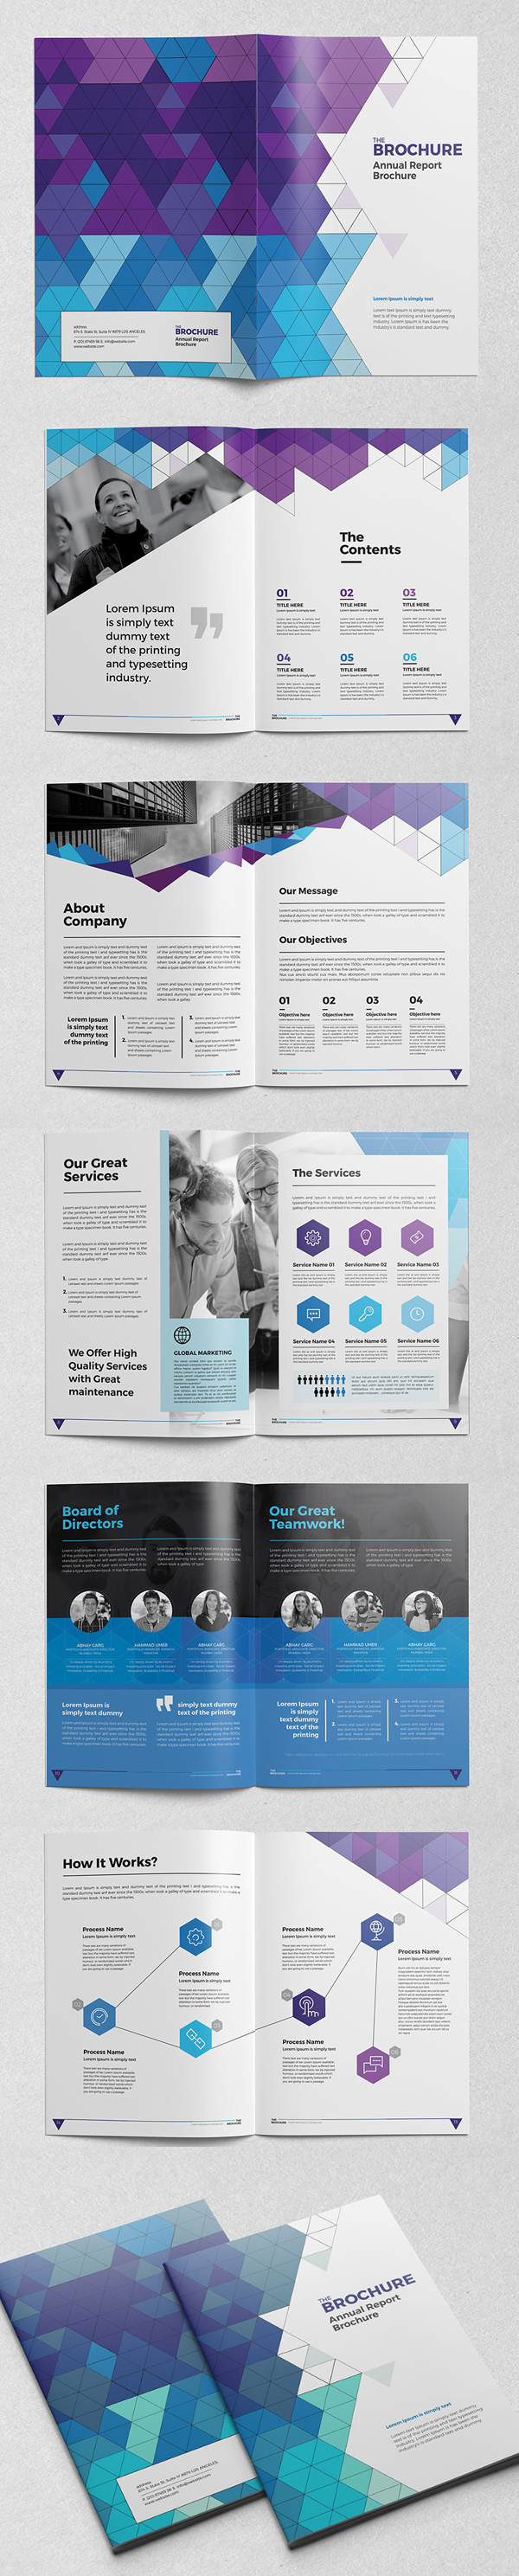 New catalog brochure design templates design graphic for Brochure design indesign templates